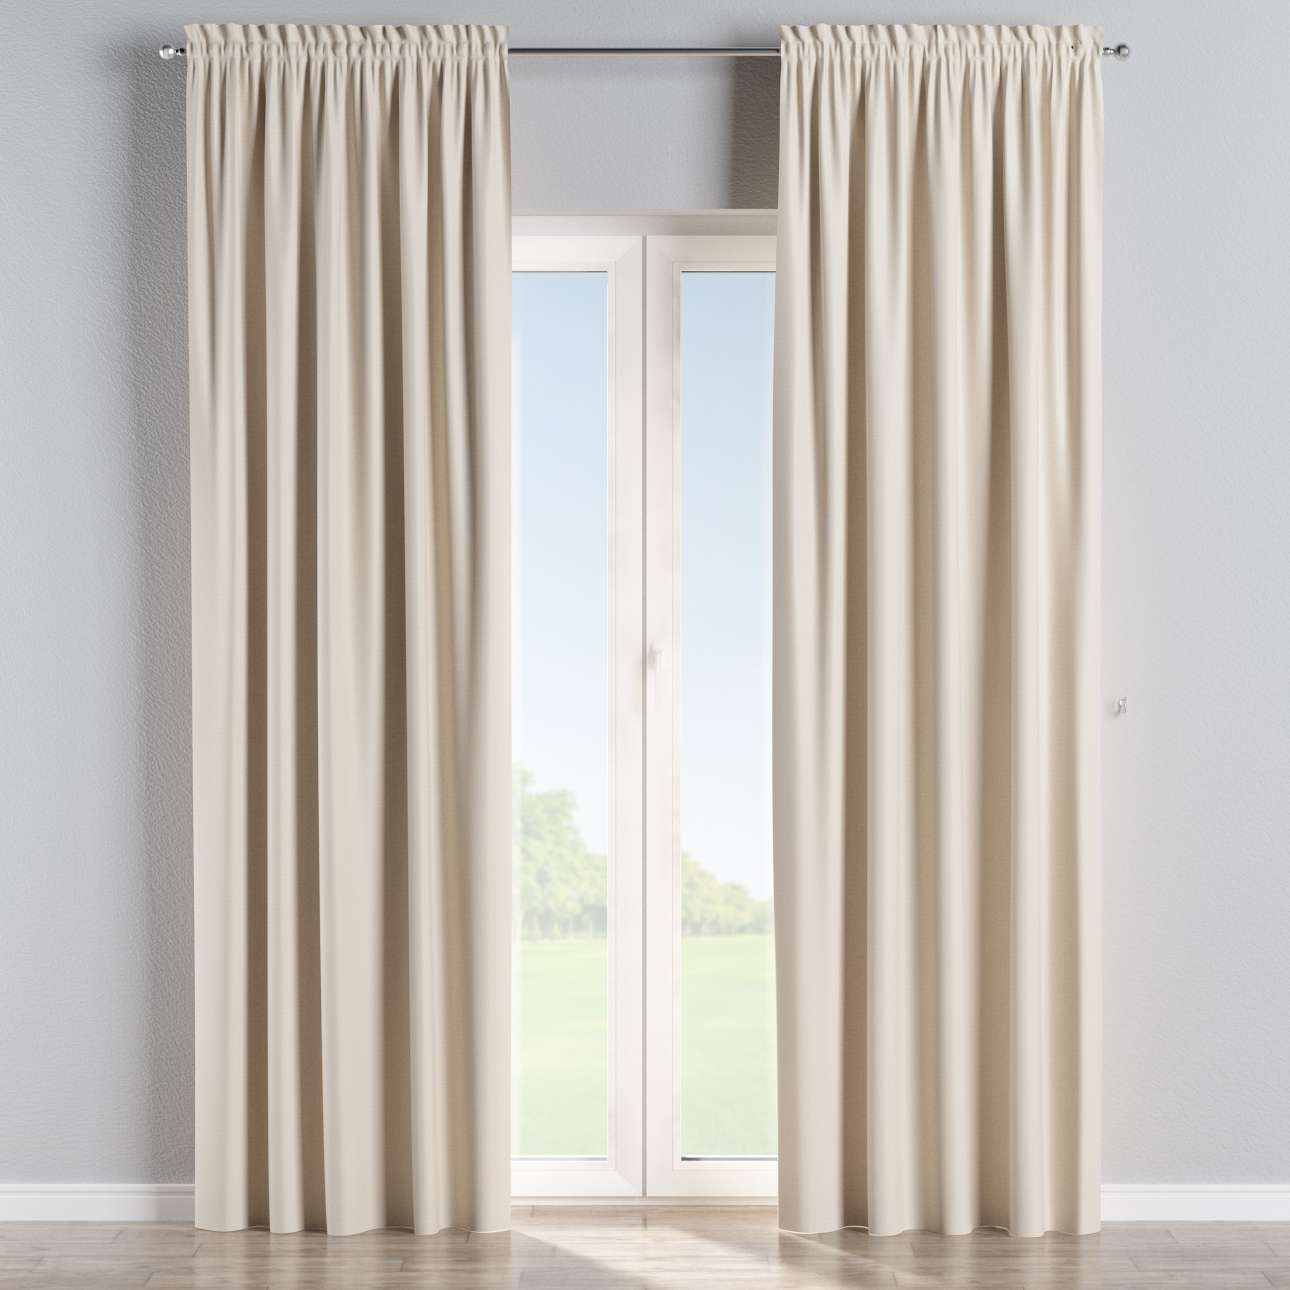 Blackout slot and frill curtains 140 × 260 cm (approx. 55 × 102 inch) in collection Blackout, fabric: 269-66